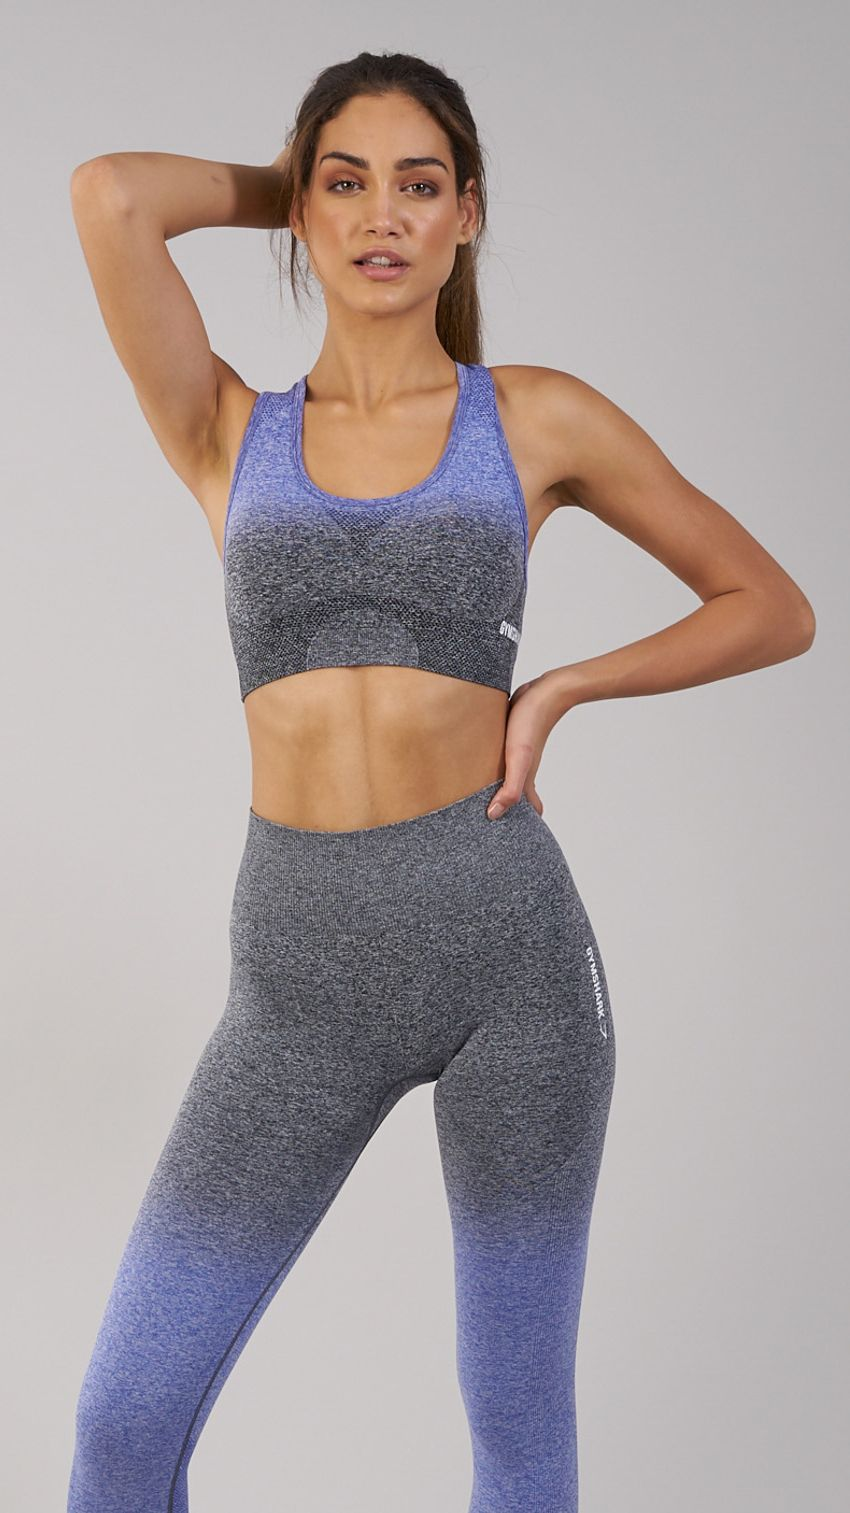 c0f944b636ff0 Gymshark Ombre Seamless Sports Bra - Indigo Black in 2019